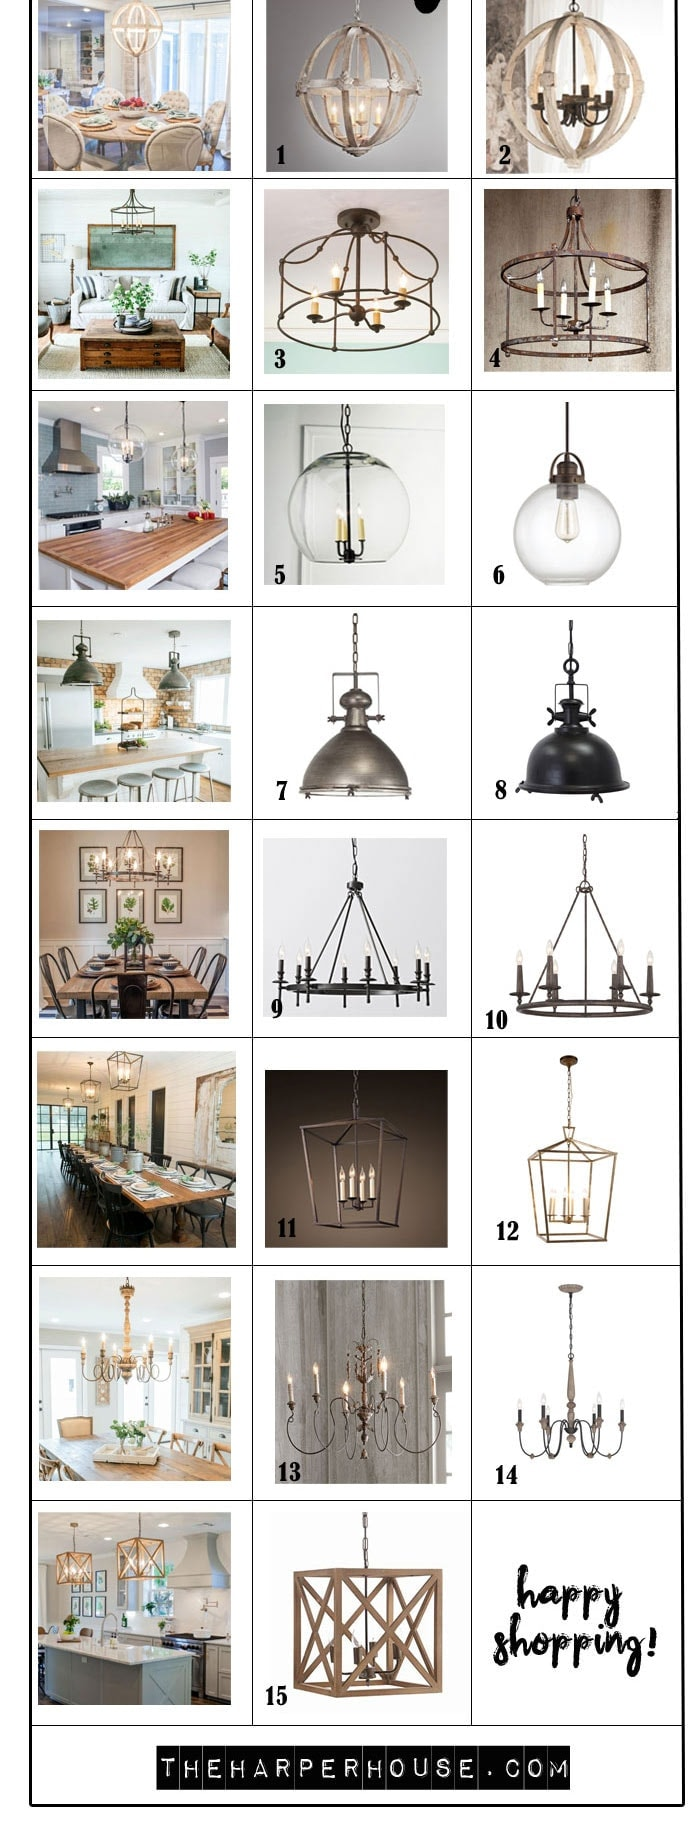 Fixer Upper Lights : find the exact light fixtures used by Joanna Gaines on Fixer Upper | Fixer Upper Lighting #fixerupper #farmhouse #lighting